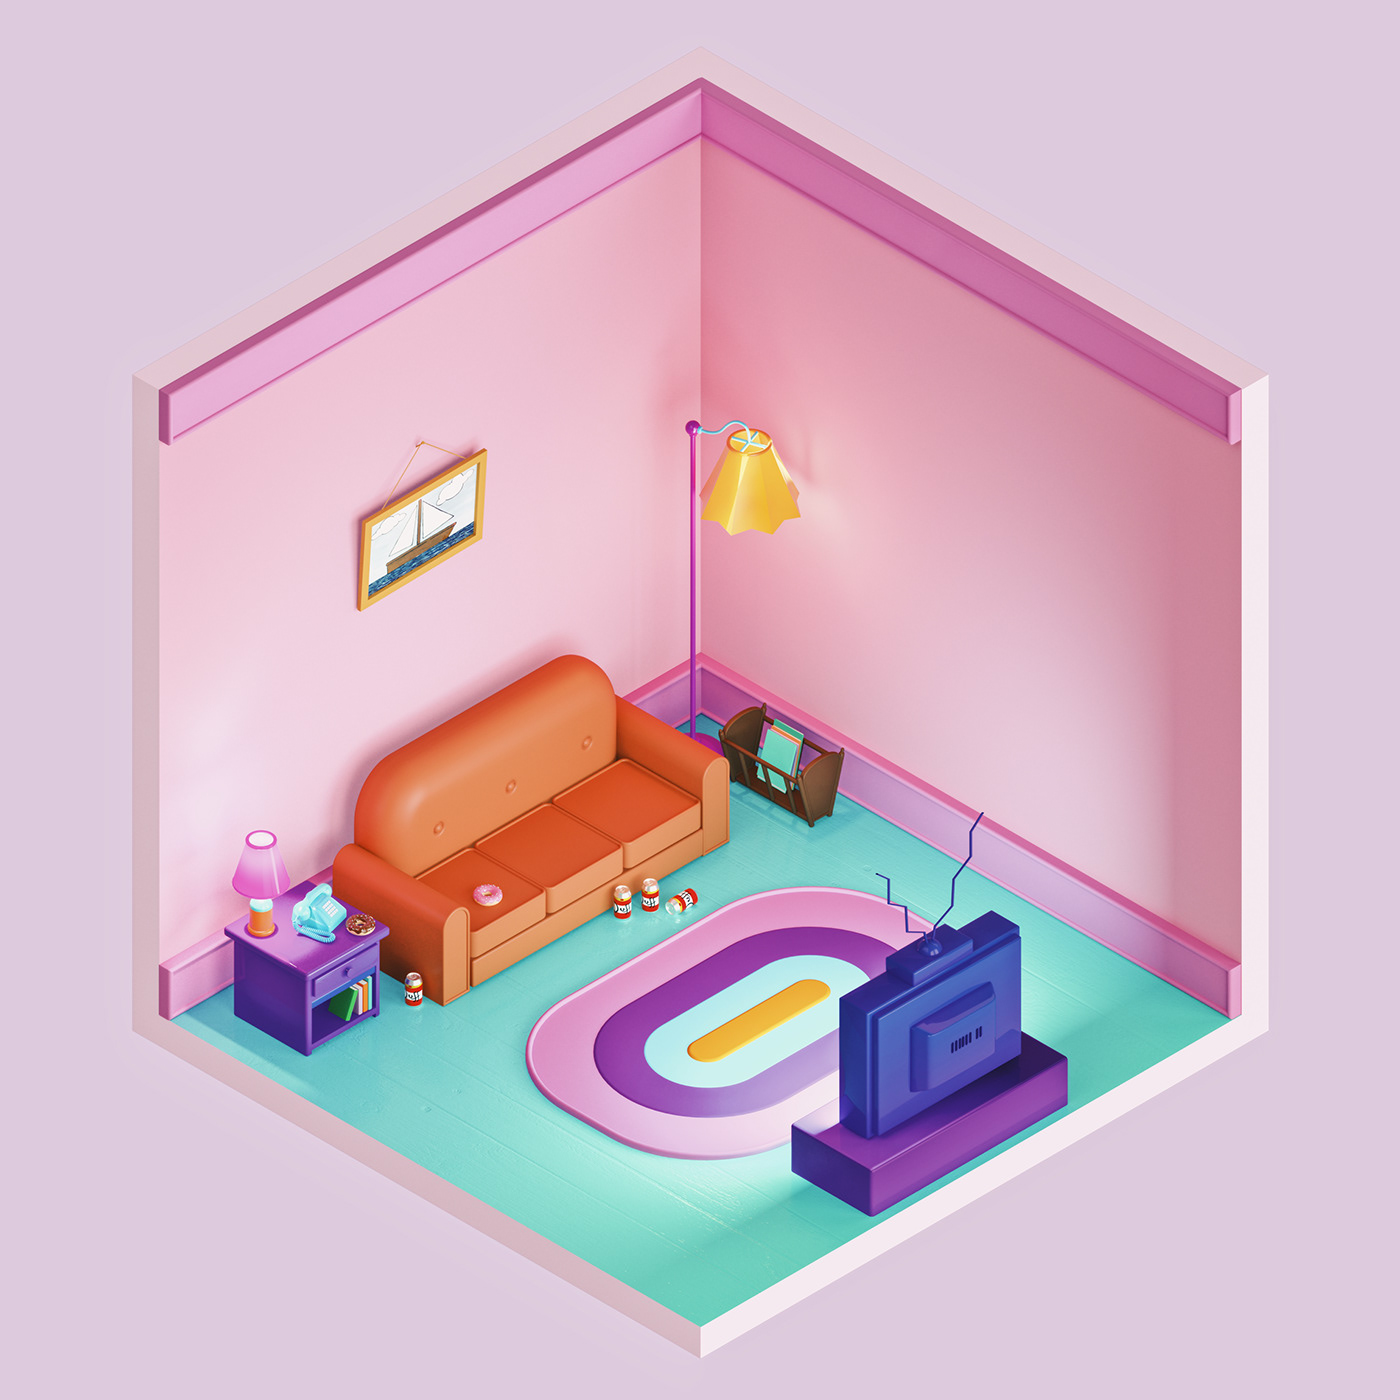 Image may contain: bed, pink and house